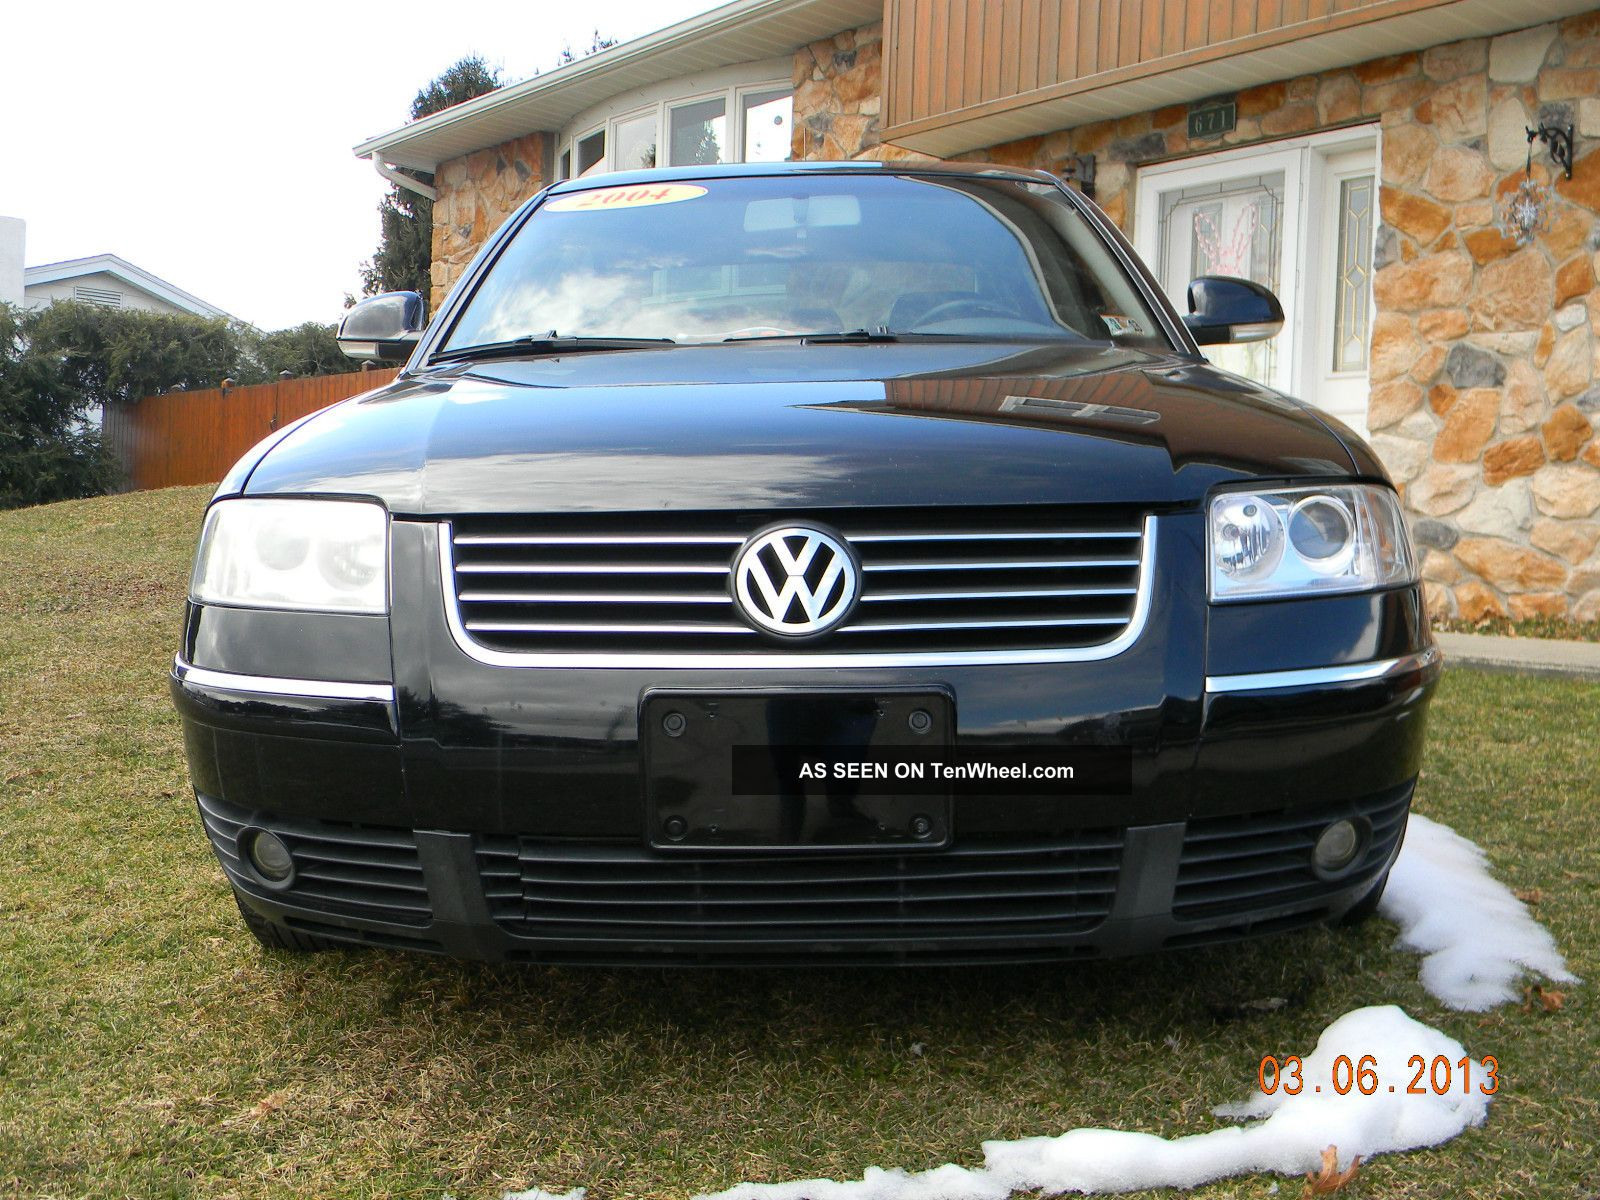 Volkswagen Passat 2.0 2004 photo - 4